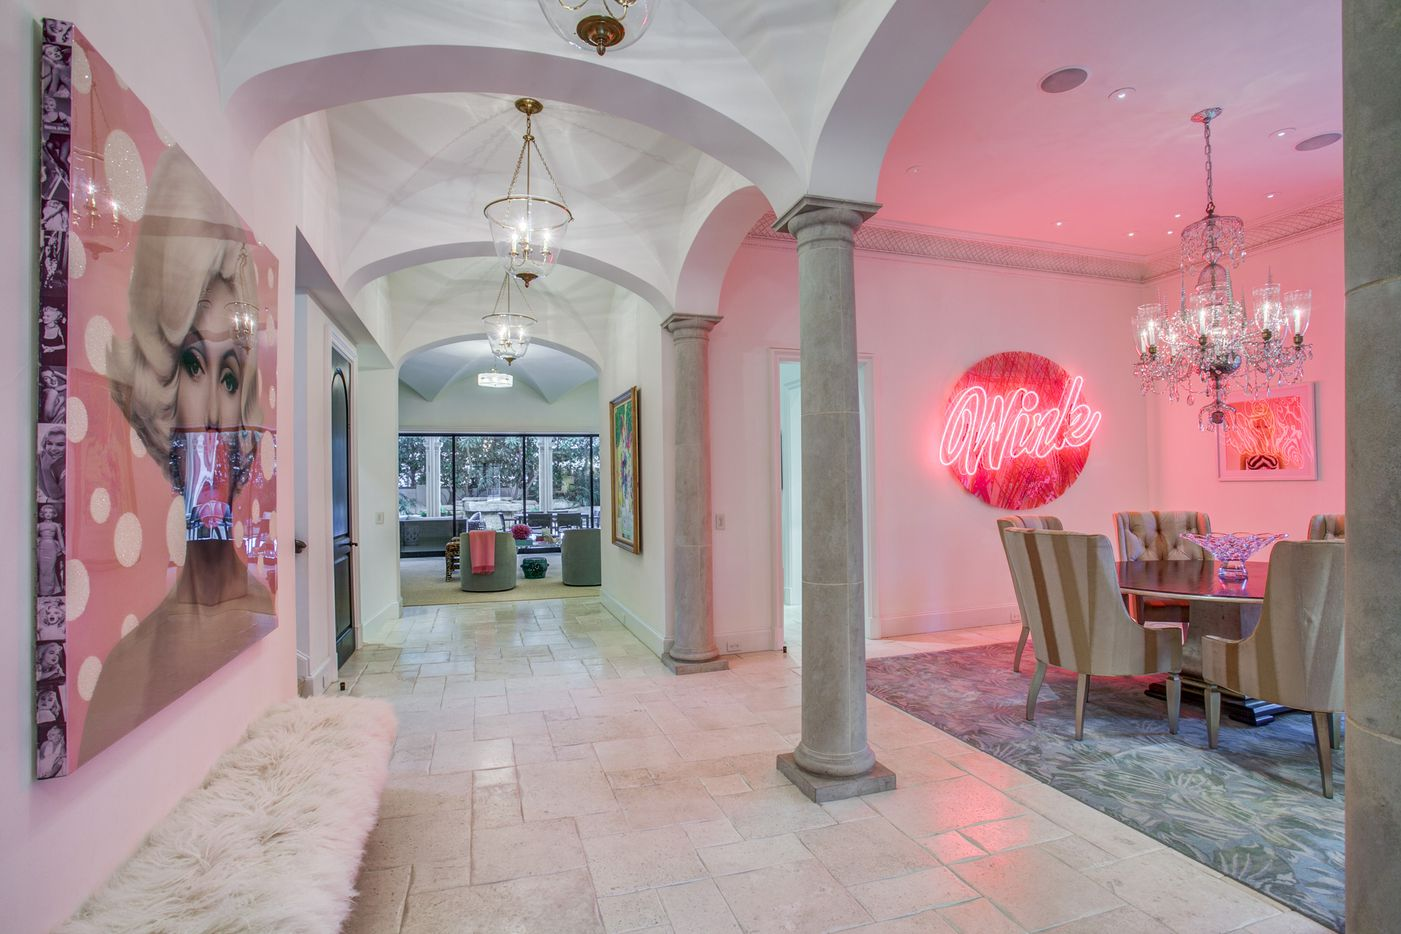 A look at a hallway of the Dallas home Kameron Westcott is selling.